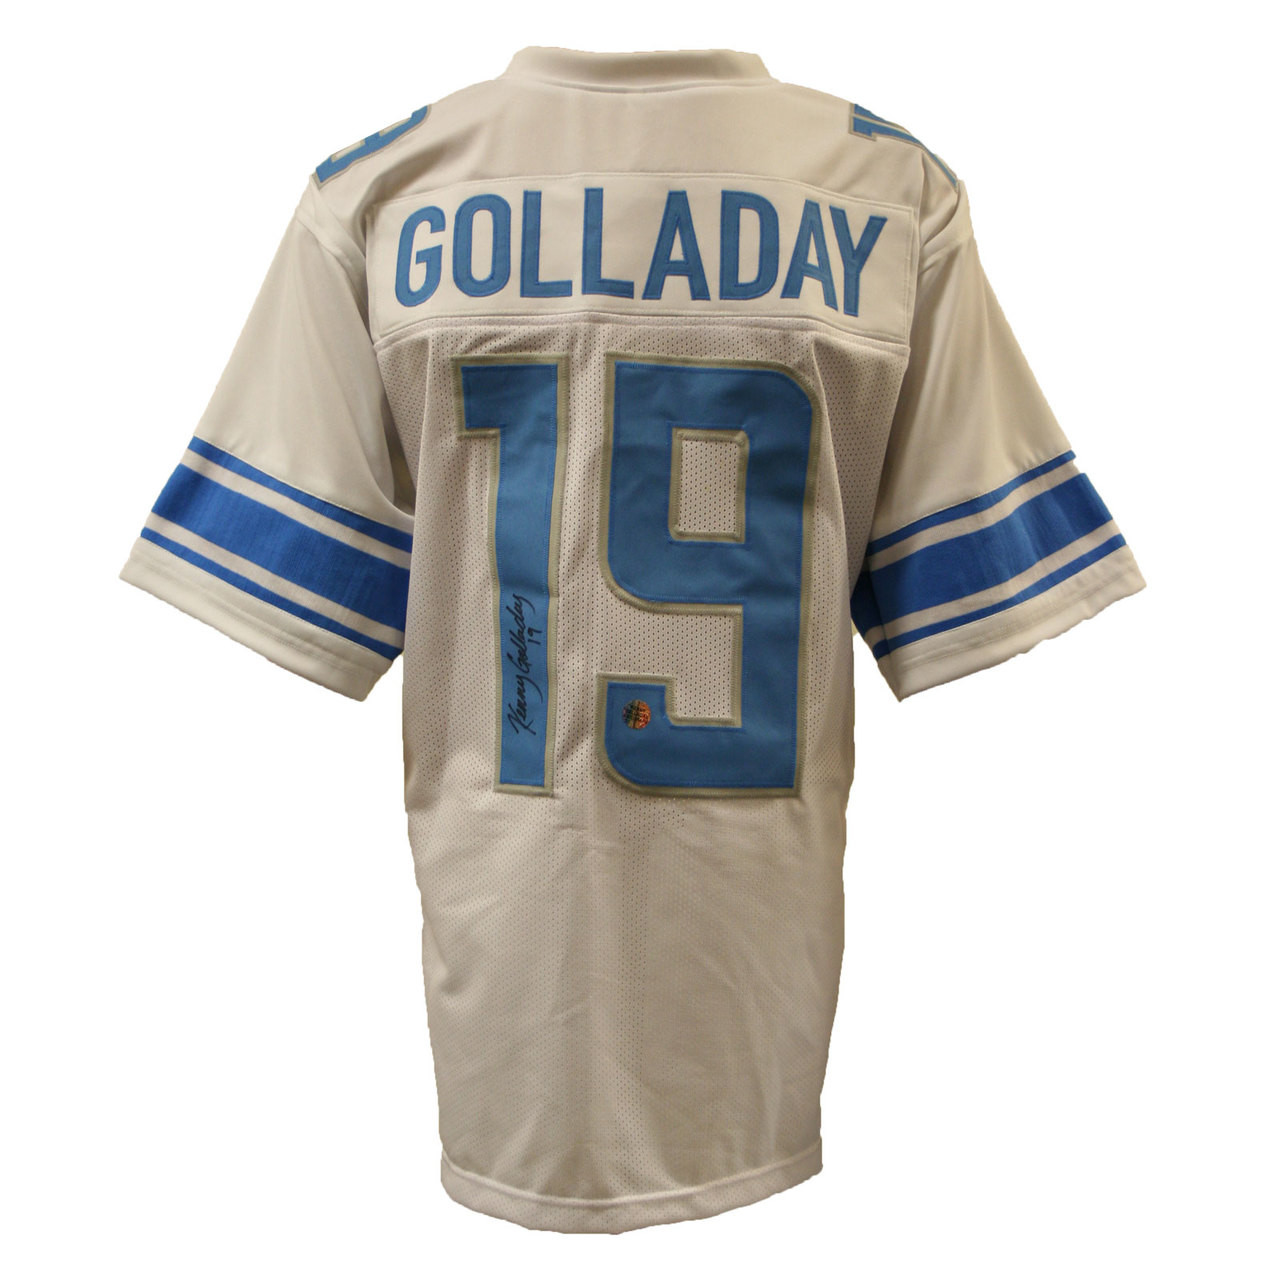 online retailer 431c1 36ee9 Kenny Golladay Autographed Custom White Football Jersey